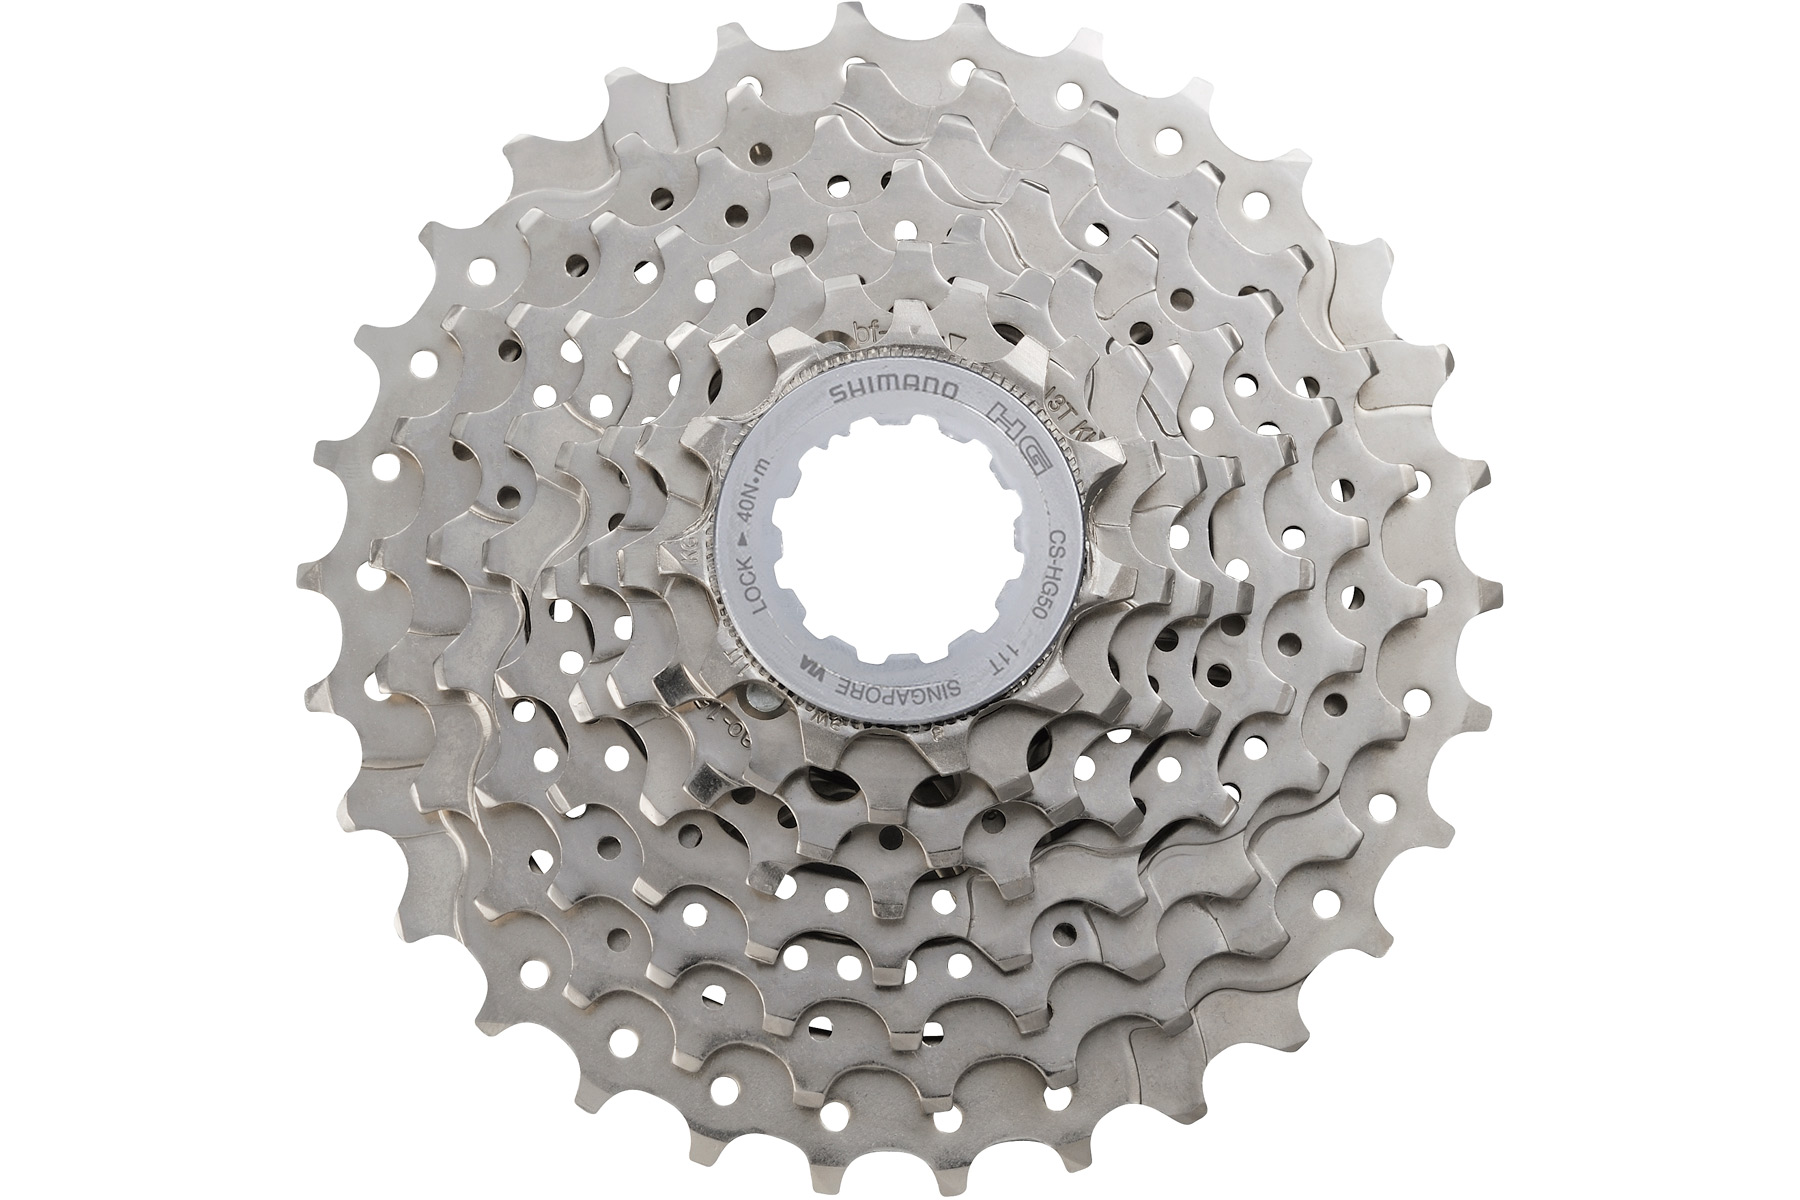 Shimano Alivio HG50 8 Speed 11-28 Tooth Cassette